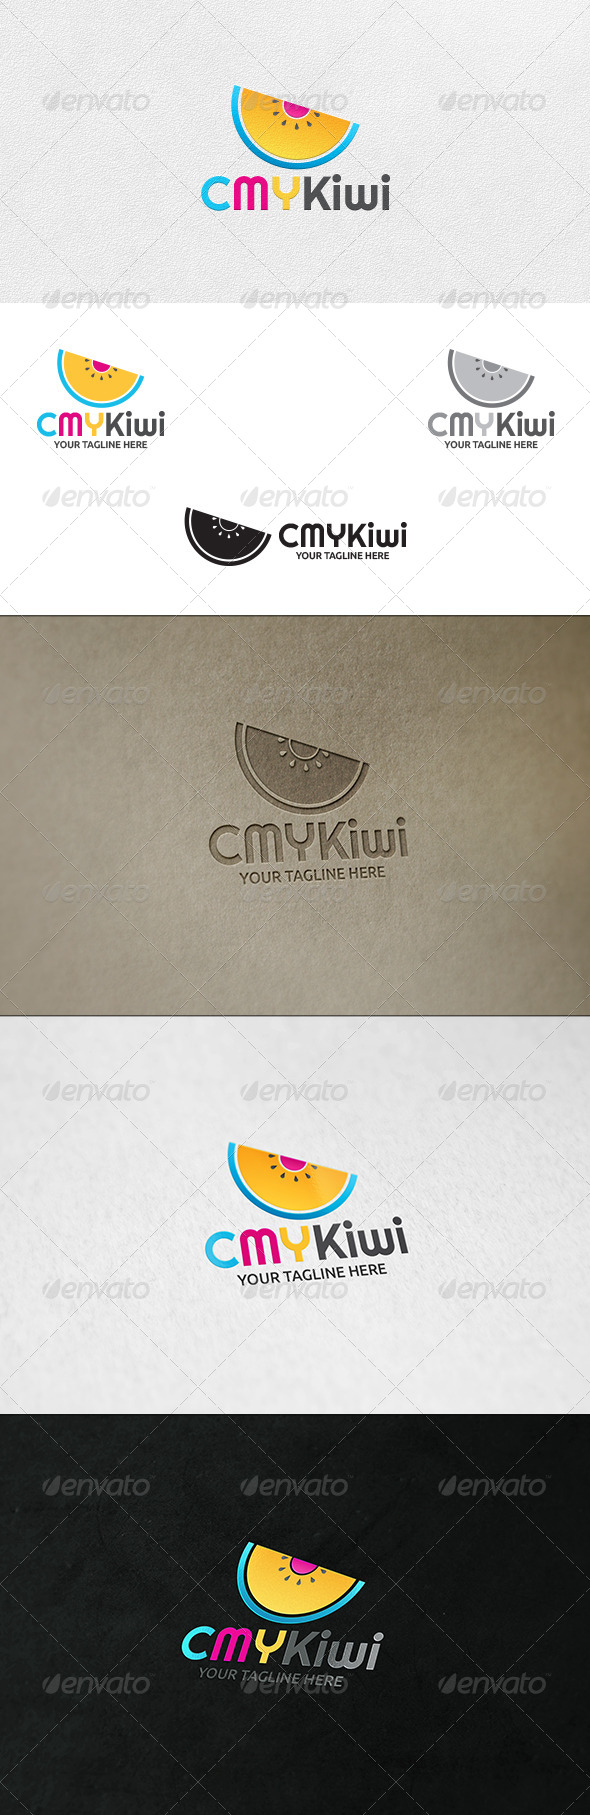 CMYKiwi - Logo Template - Nature Logo Templates